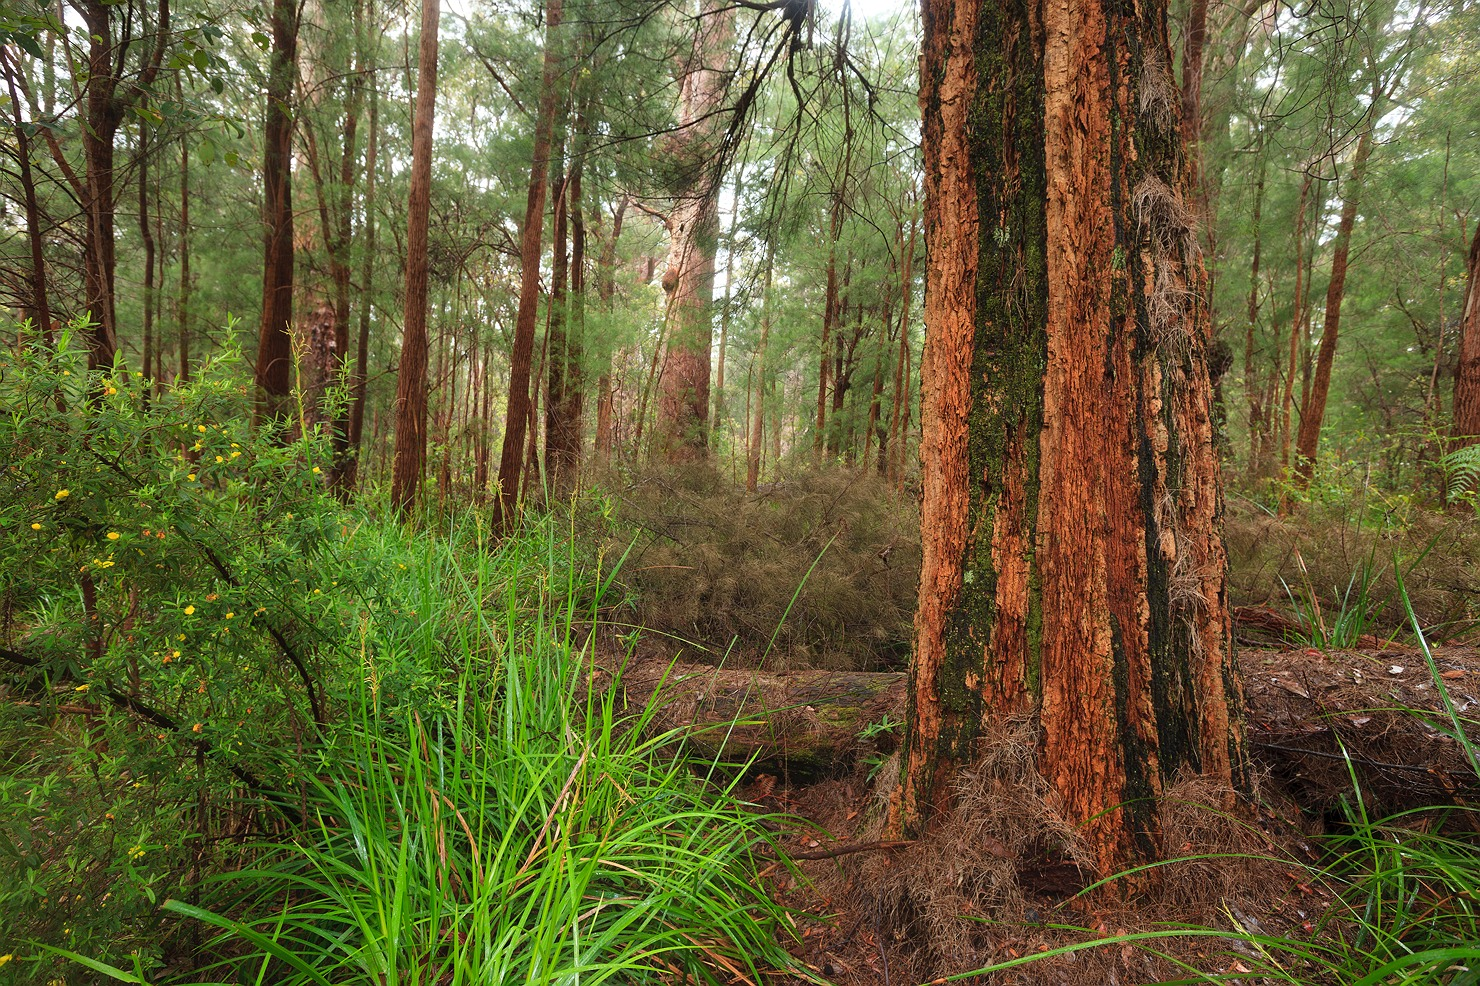 Forests of Pemberton and Walpole